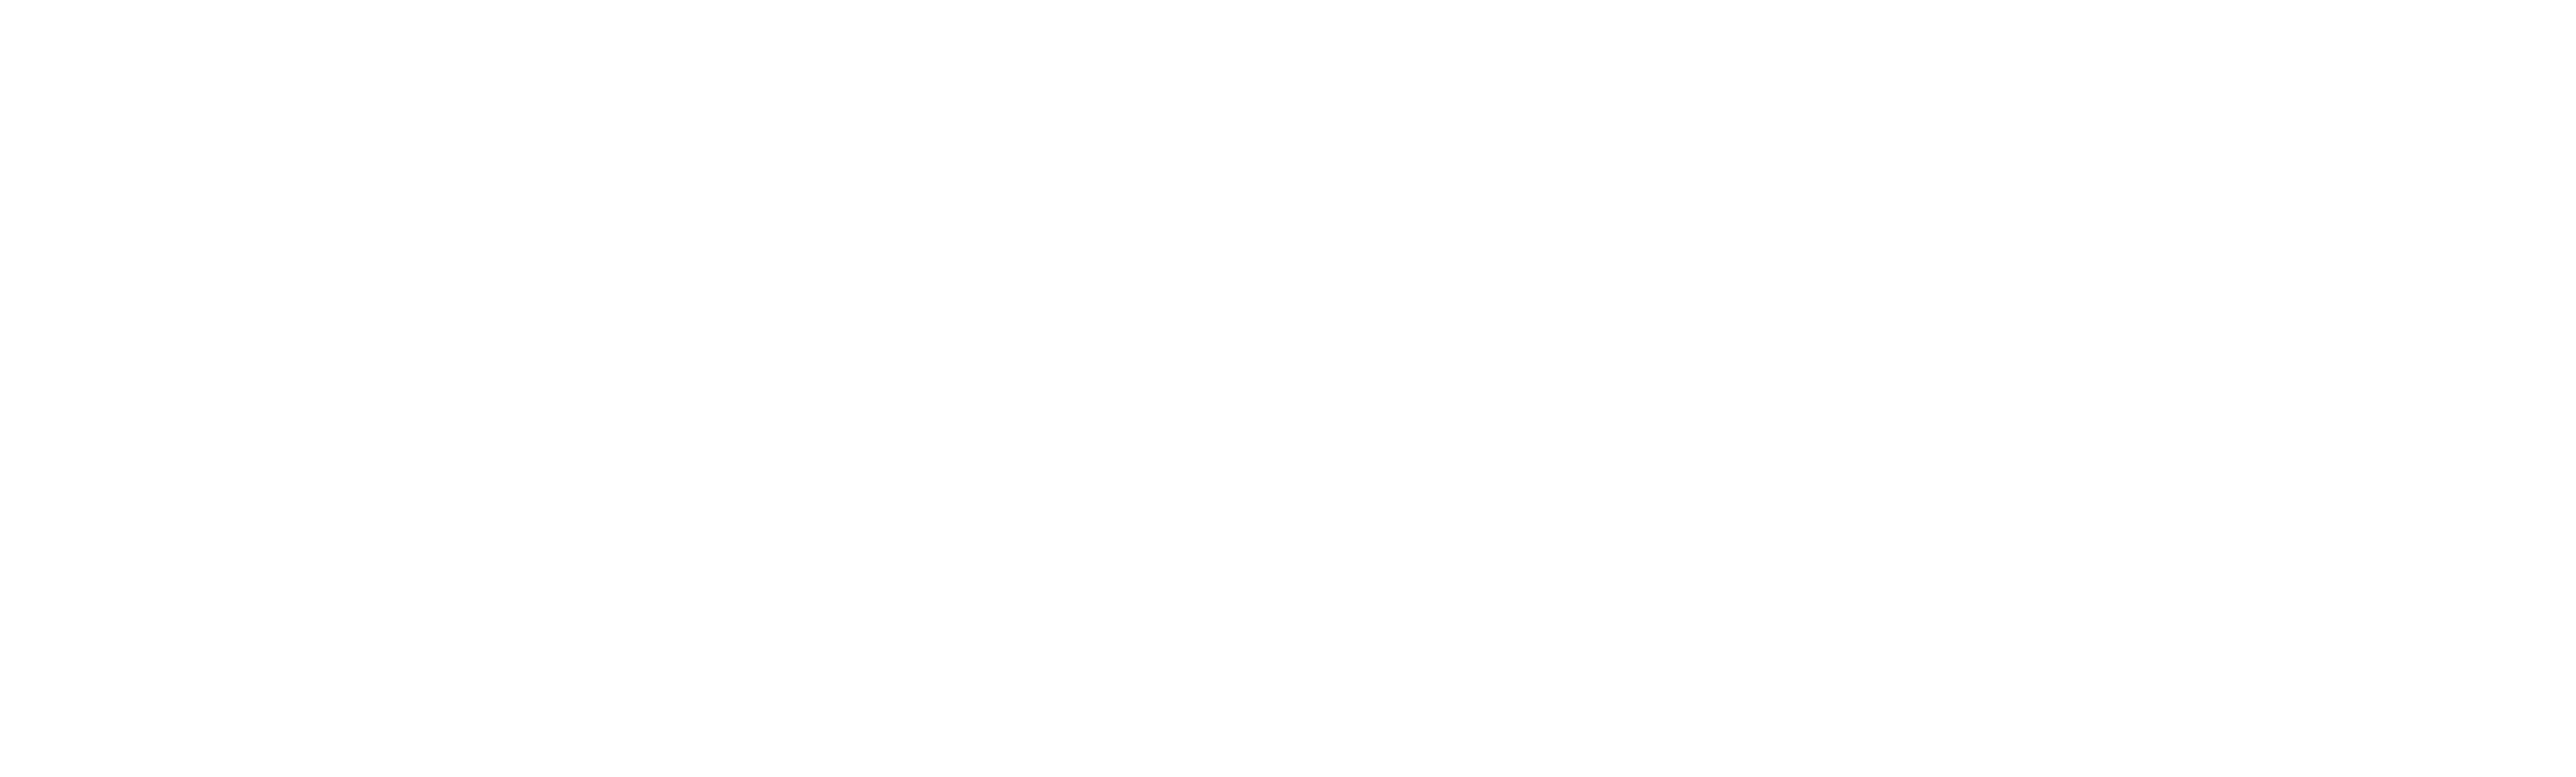 Big George's logo